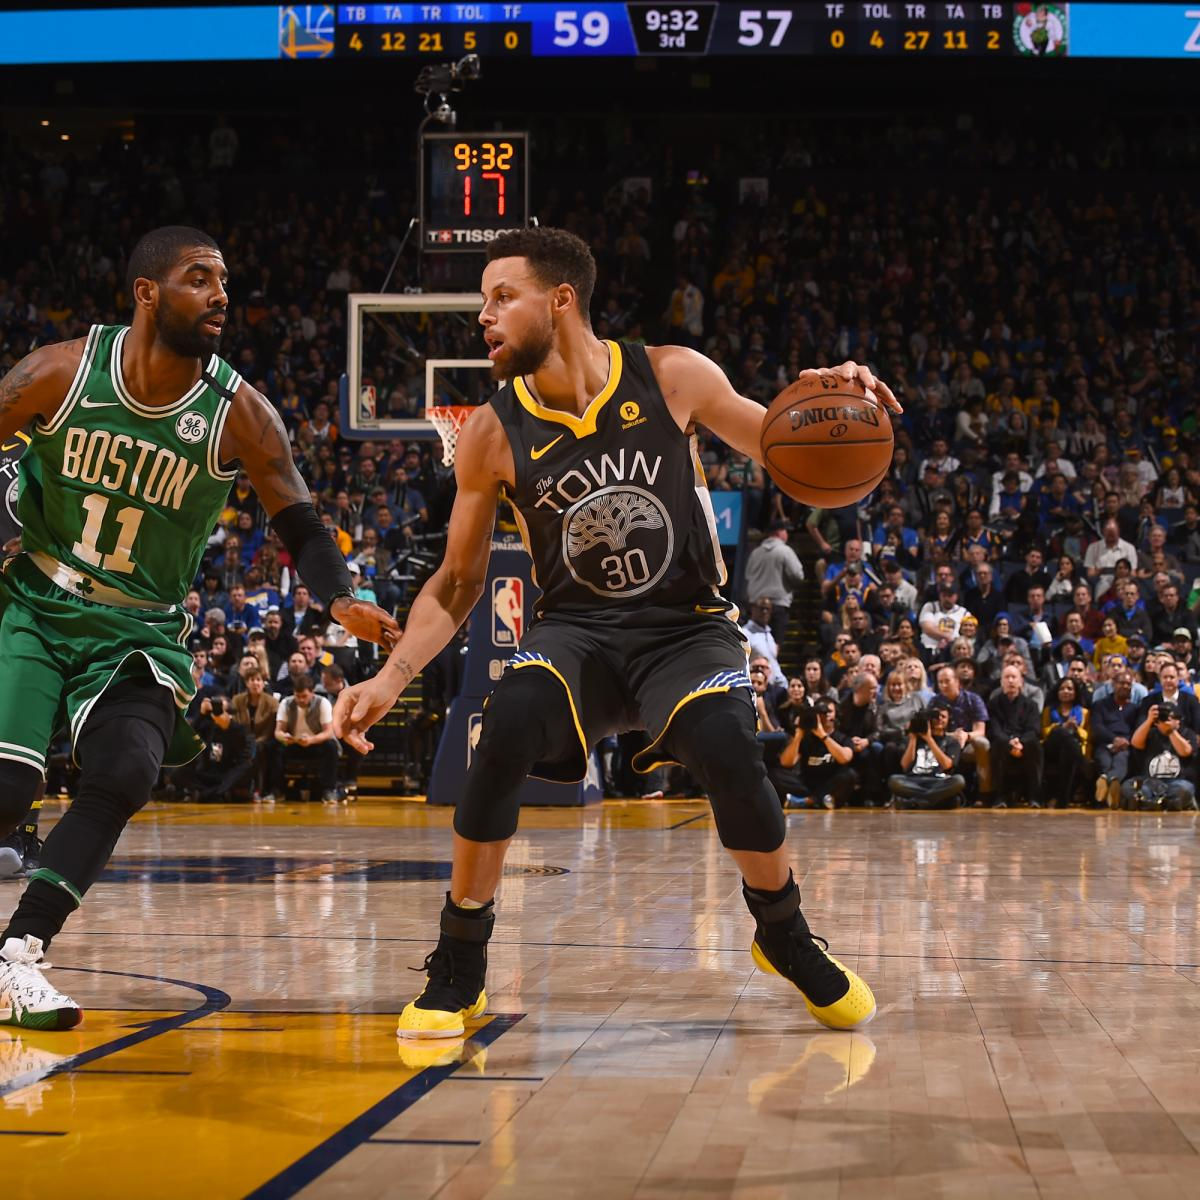 Warriors Come Out To Play Bleacher Report: Stephen Curry Scores 49, Outduels Kyrie Irving As Warriors